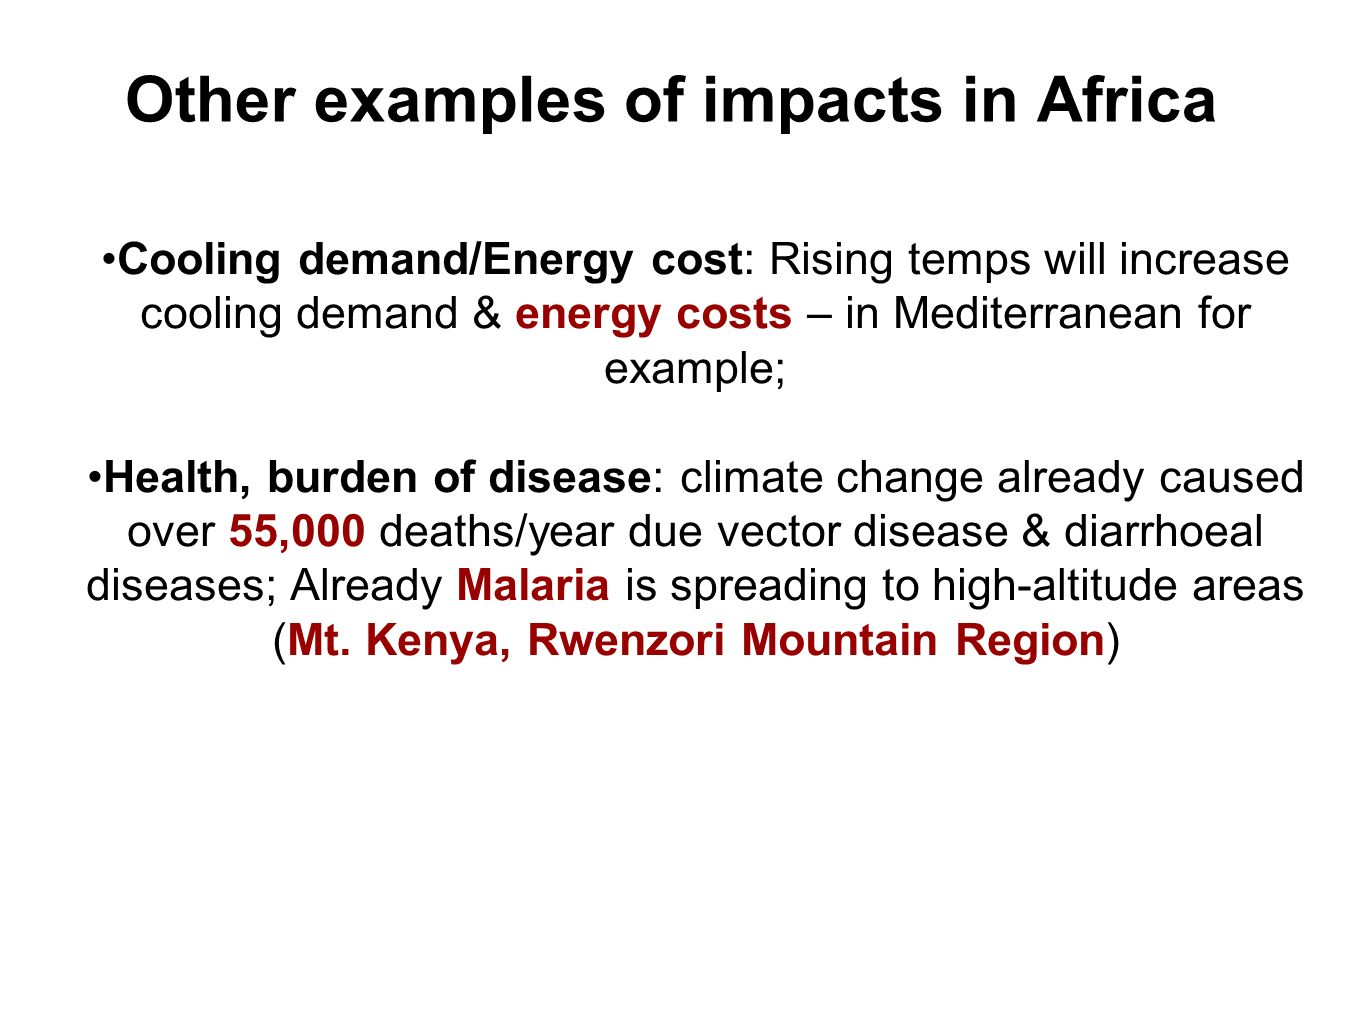 Other examples of impacts in Africa Cooling demand/Energy cost: Rising temps will increase cooling demand & energy costs – in Mediterranean for example; Health, burden of disease: climate change already caused over 55,000 deaths/year due vector disease & diarrhoeal diseases; Already Malaria is spreading to high-altitude areas (Mt.